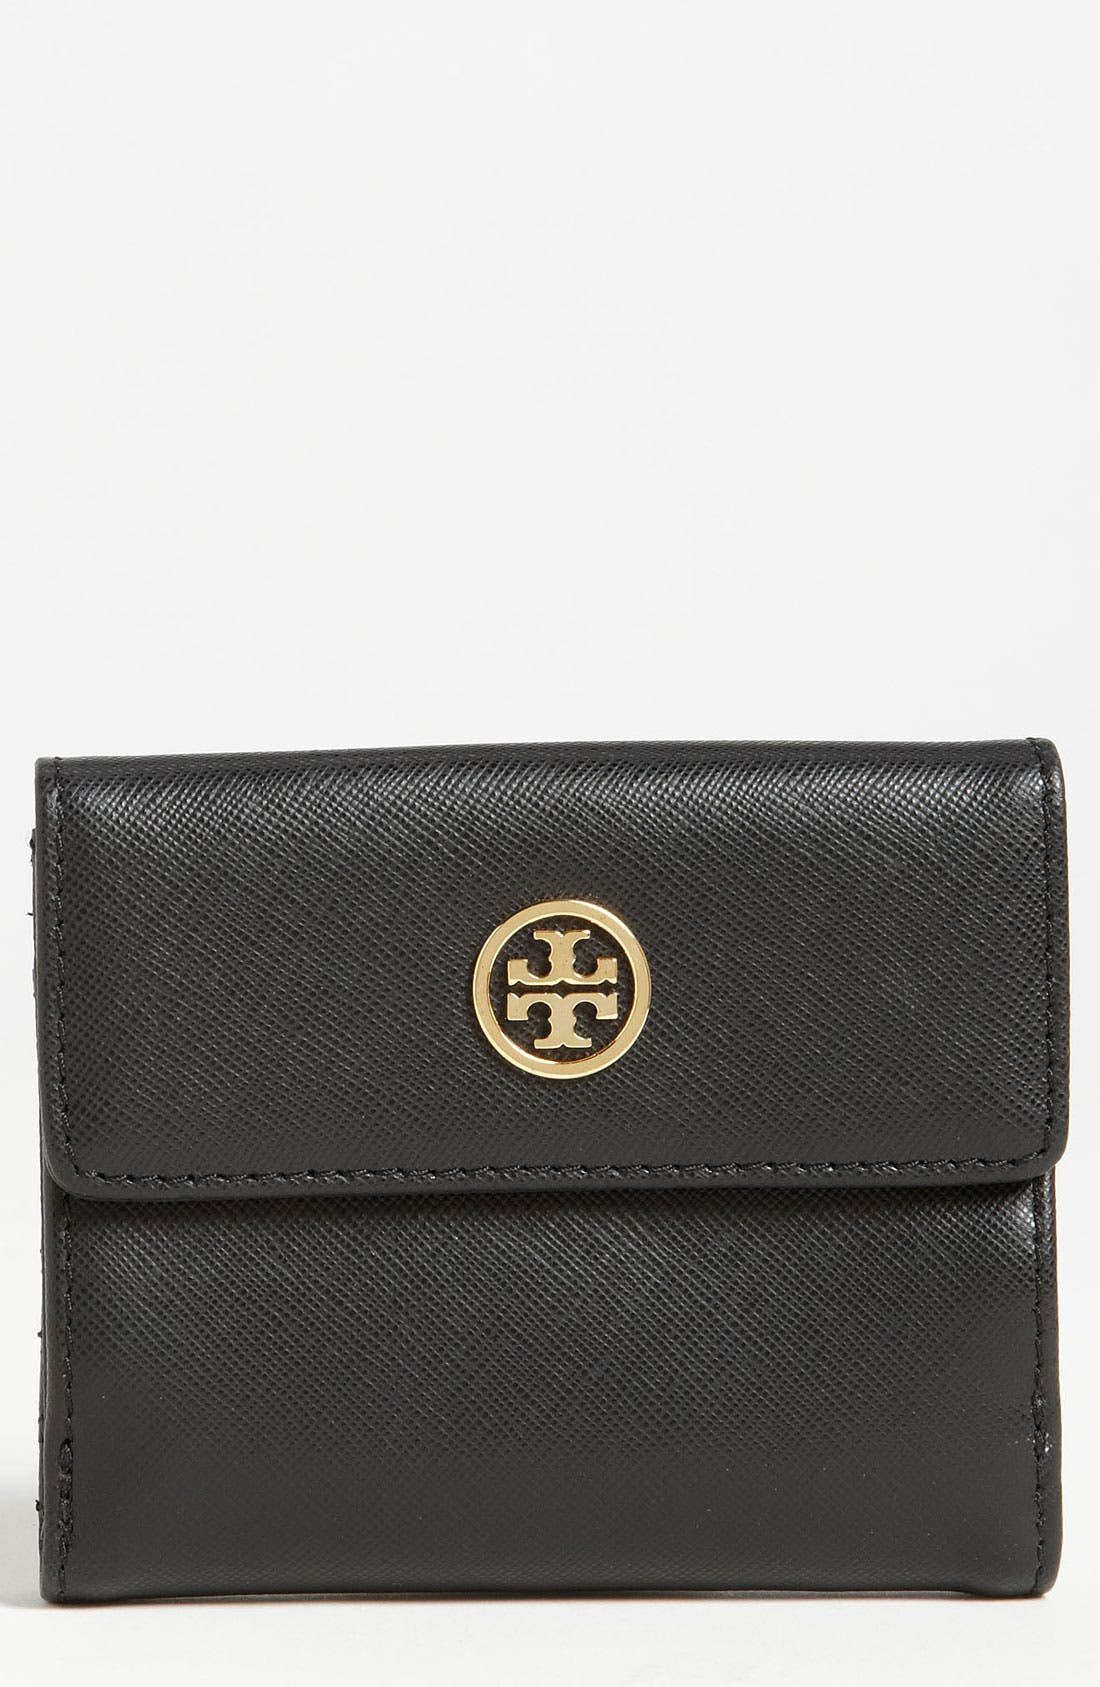 Main Image - Tory Burch 'Robinson' Double Flap French Wallet